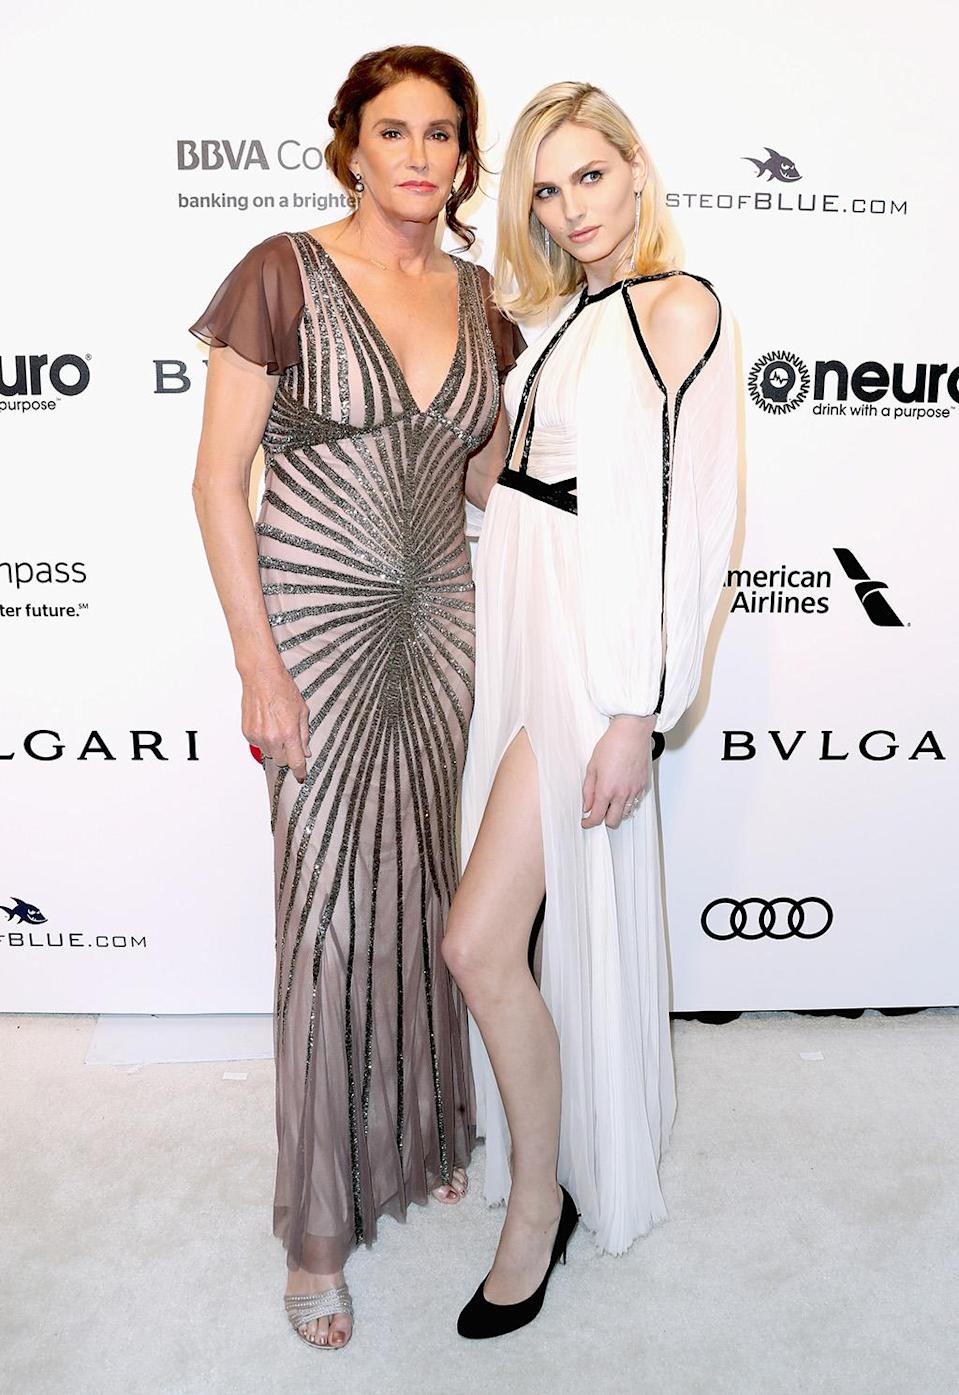 <p>Caitlyn Jenner rocked a sheer, sparkly gown designed by Rachel Gilbert at the Elton John AIDS Foundation bash. Model Andreja Pejic, who was the first transgender model to be profiled by <i>Vogue</i> magazine in 2015, accompanied her on the red carpet. (Photo by Frederick M. Brown/Getty Images) </p>